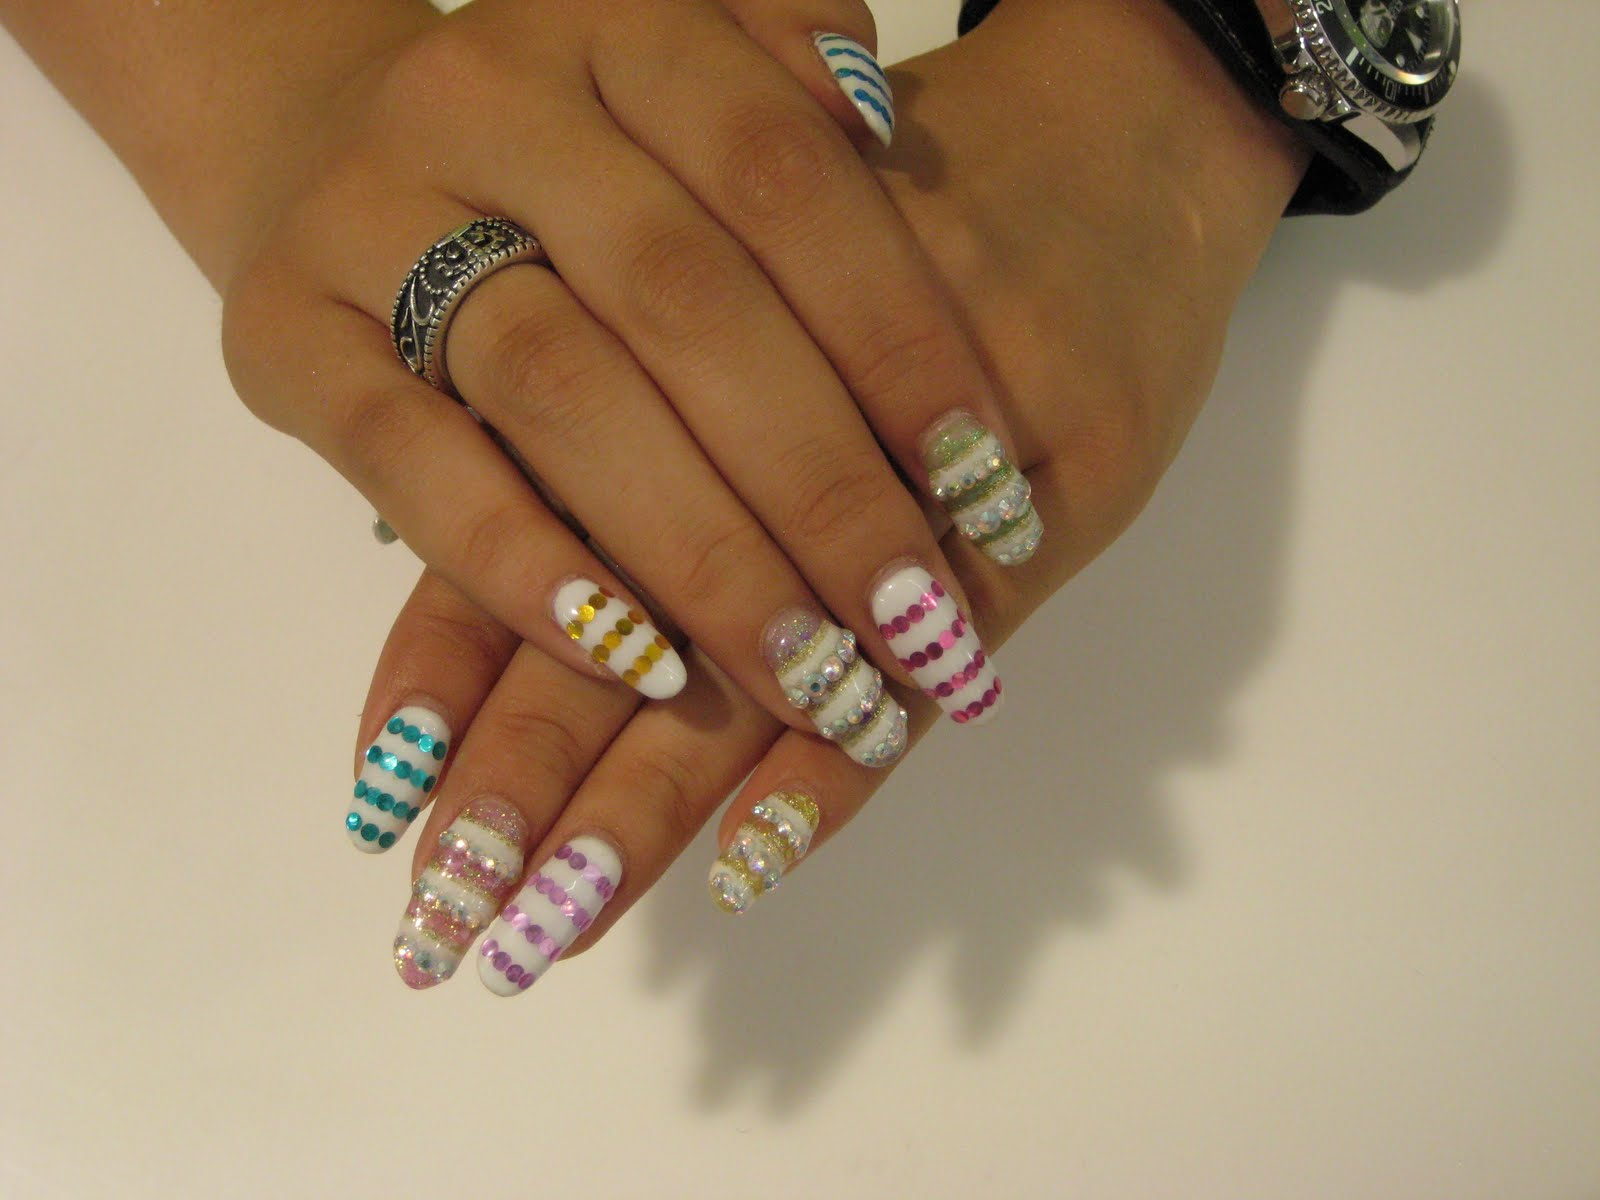 Nails expo ~ Beautify themselves with sweet nails